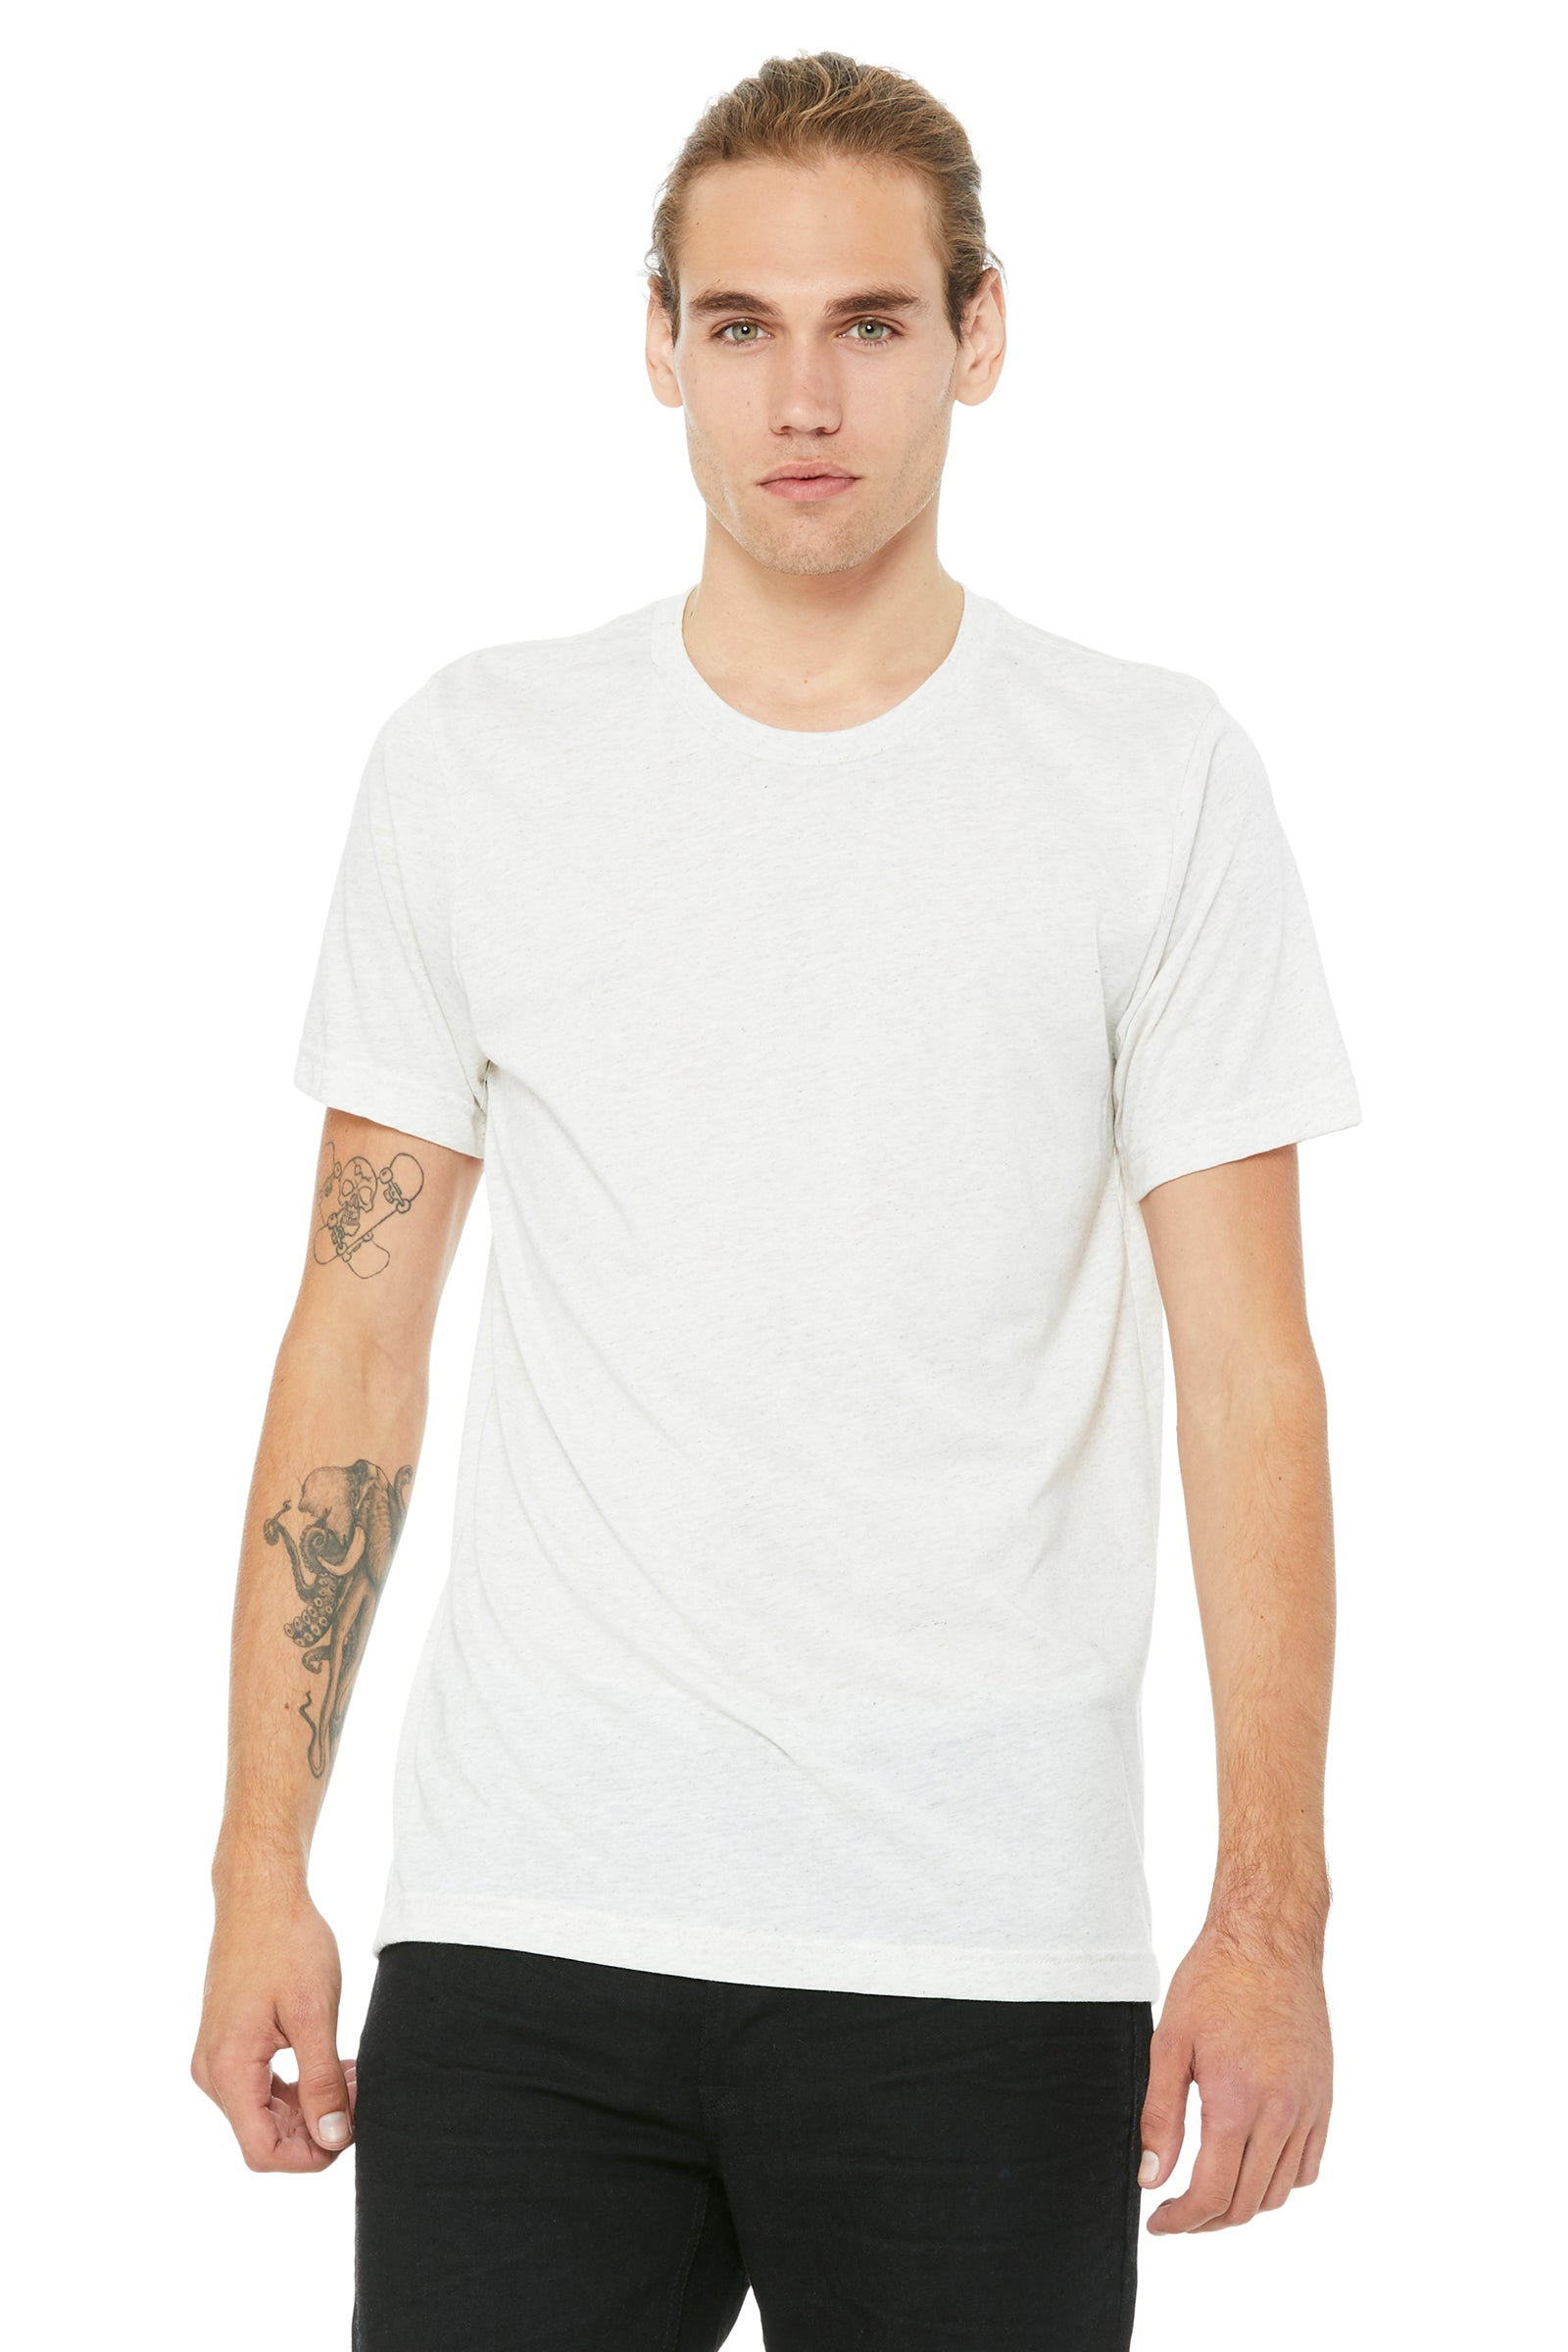 Bella + Canvas Unisex Short Sleeve Jersey Tee 3001, Size Extra Large